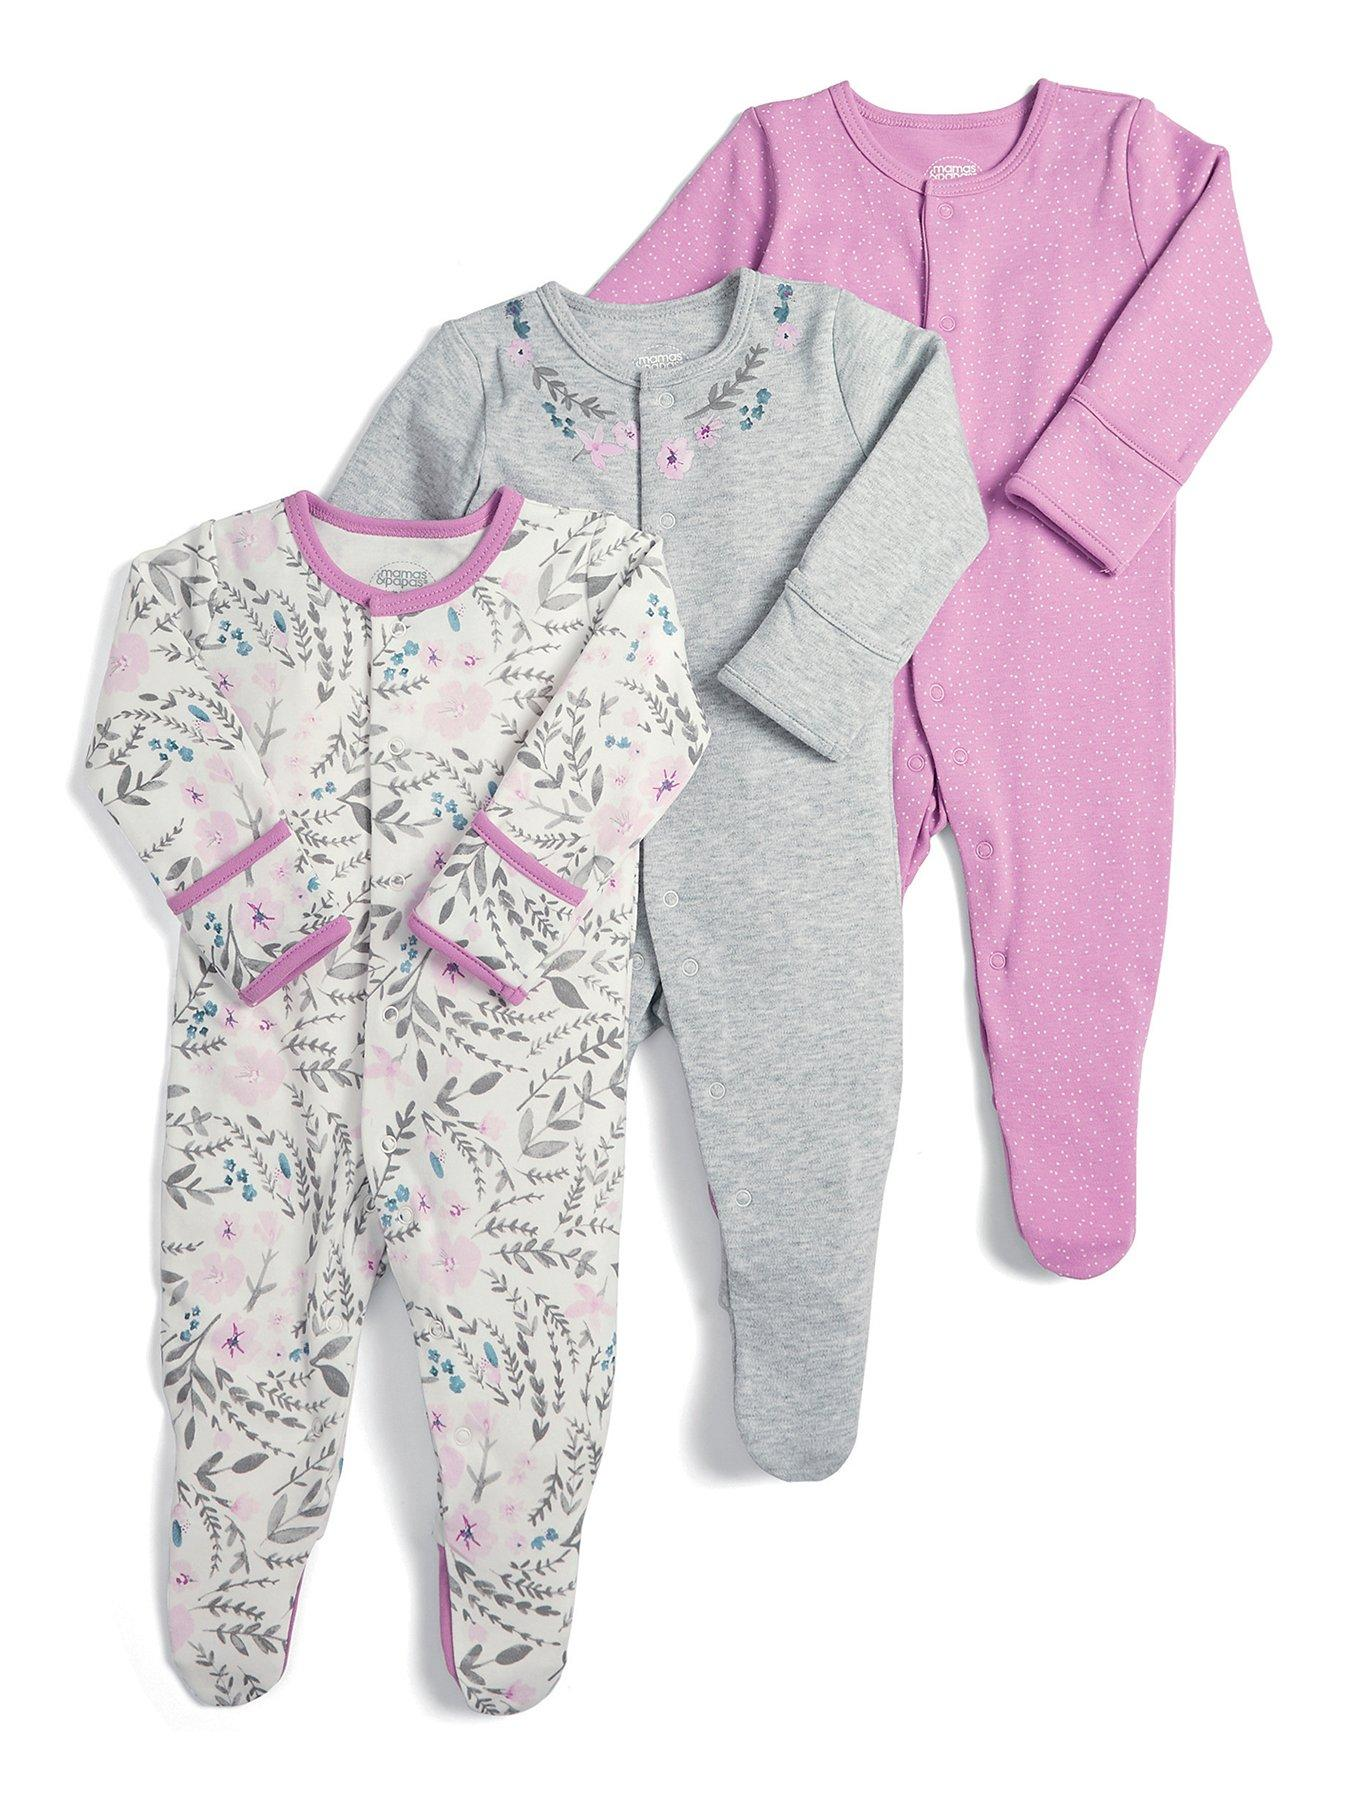 Creative Monsoon Girls Romper Sleepsuit 0-3 Months floral Low Price